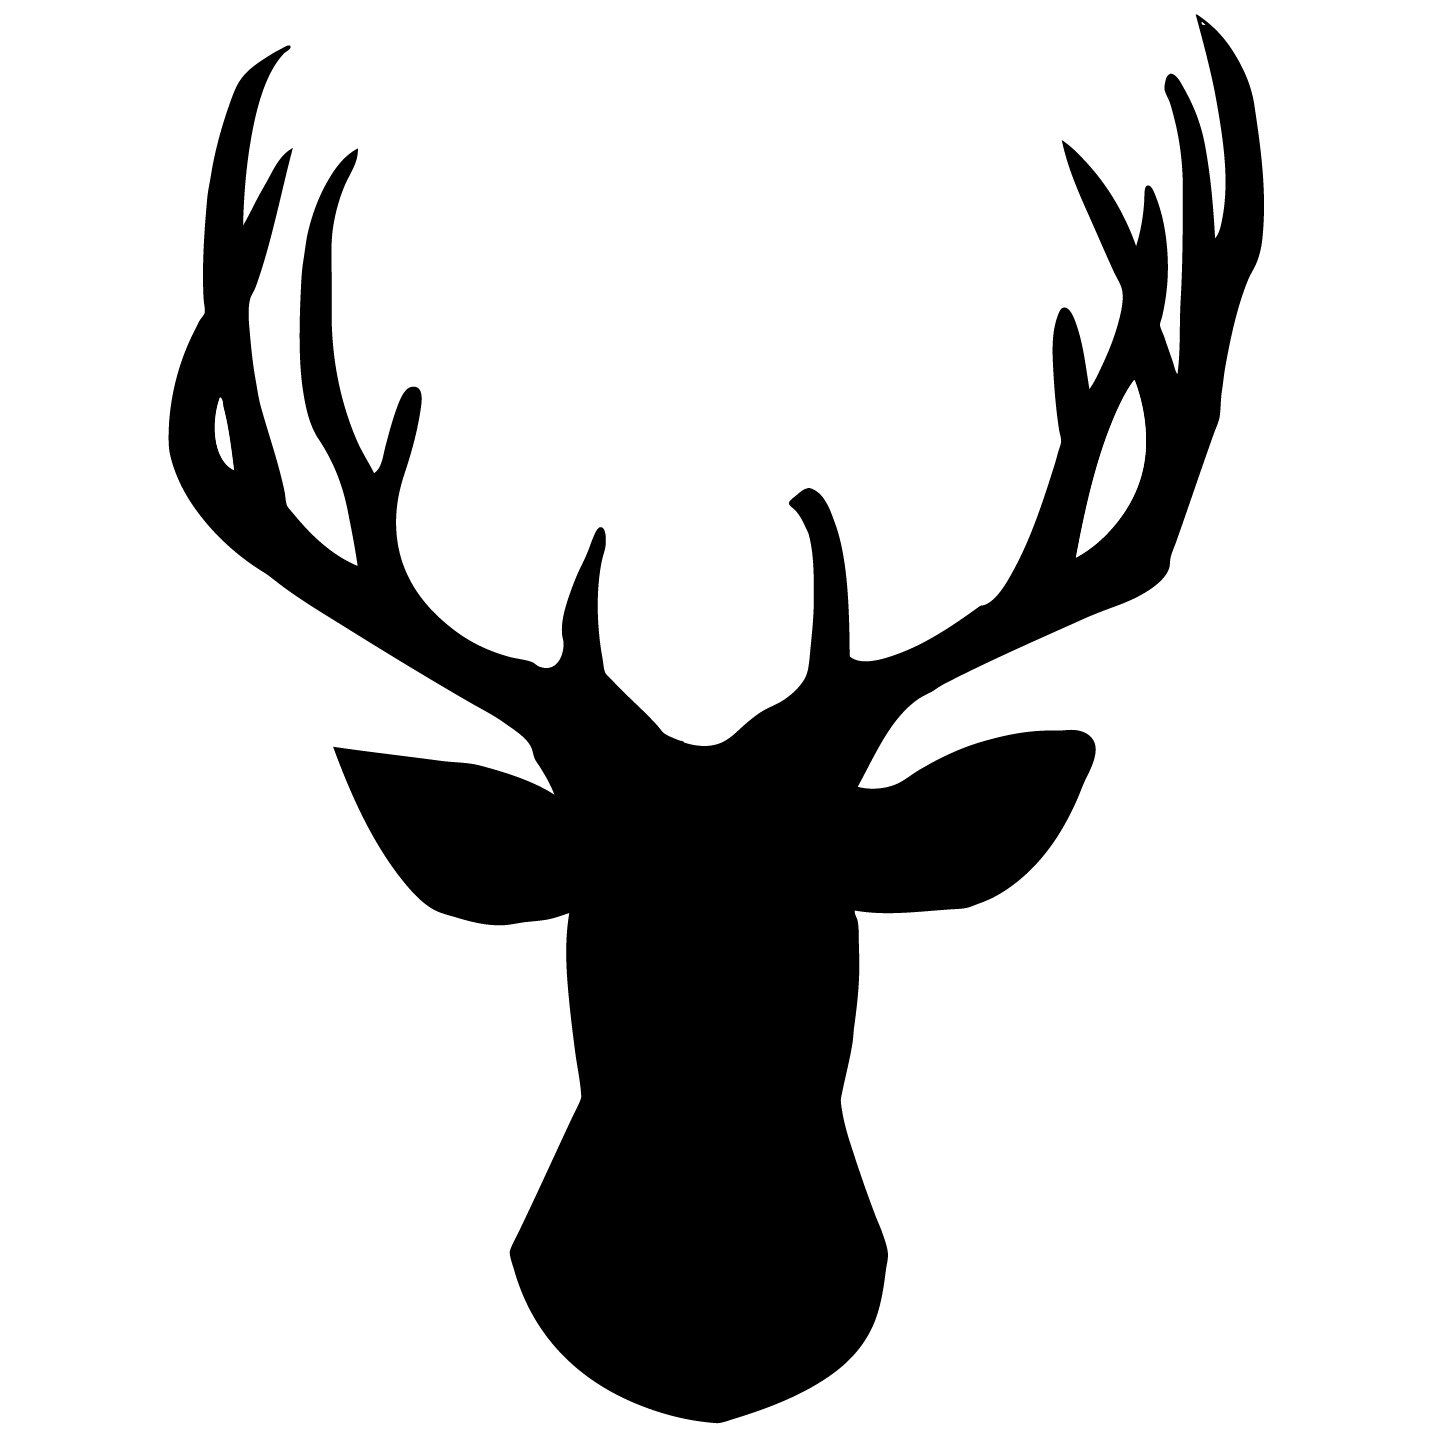 Deer Antler Clip Art - Cliparts.co